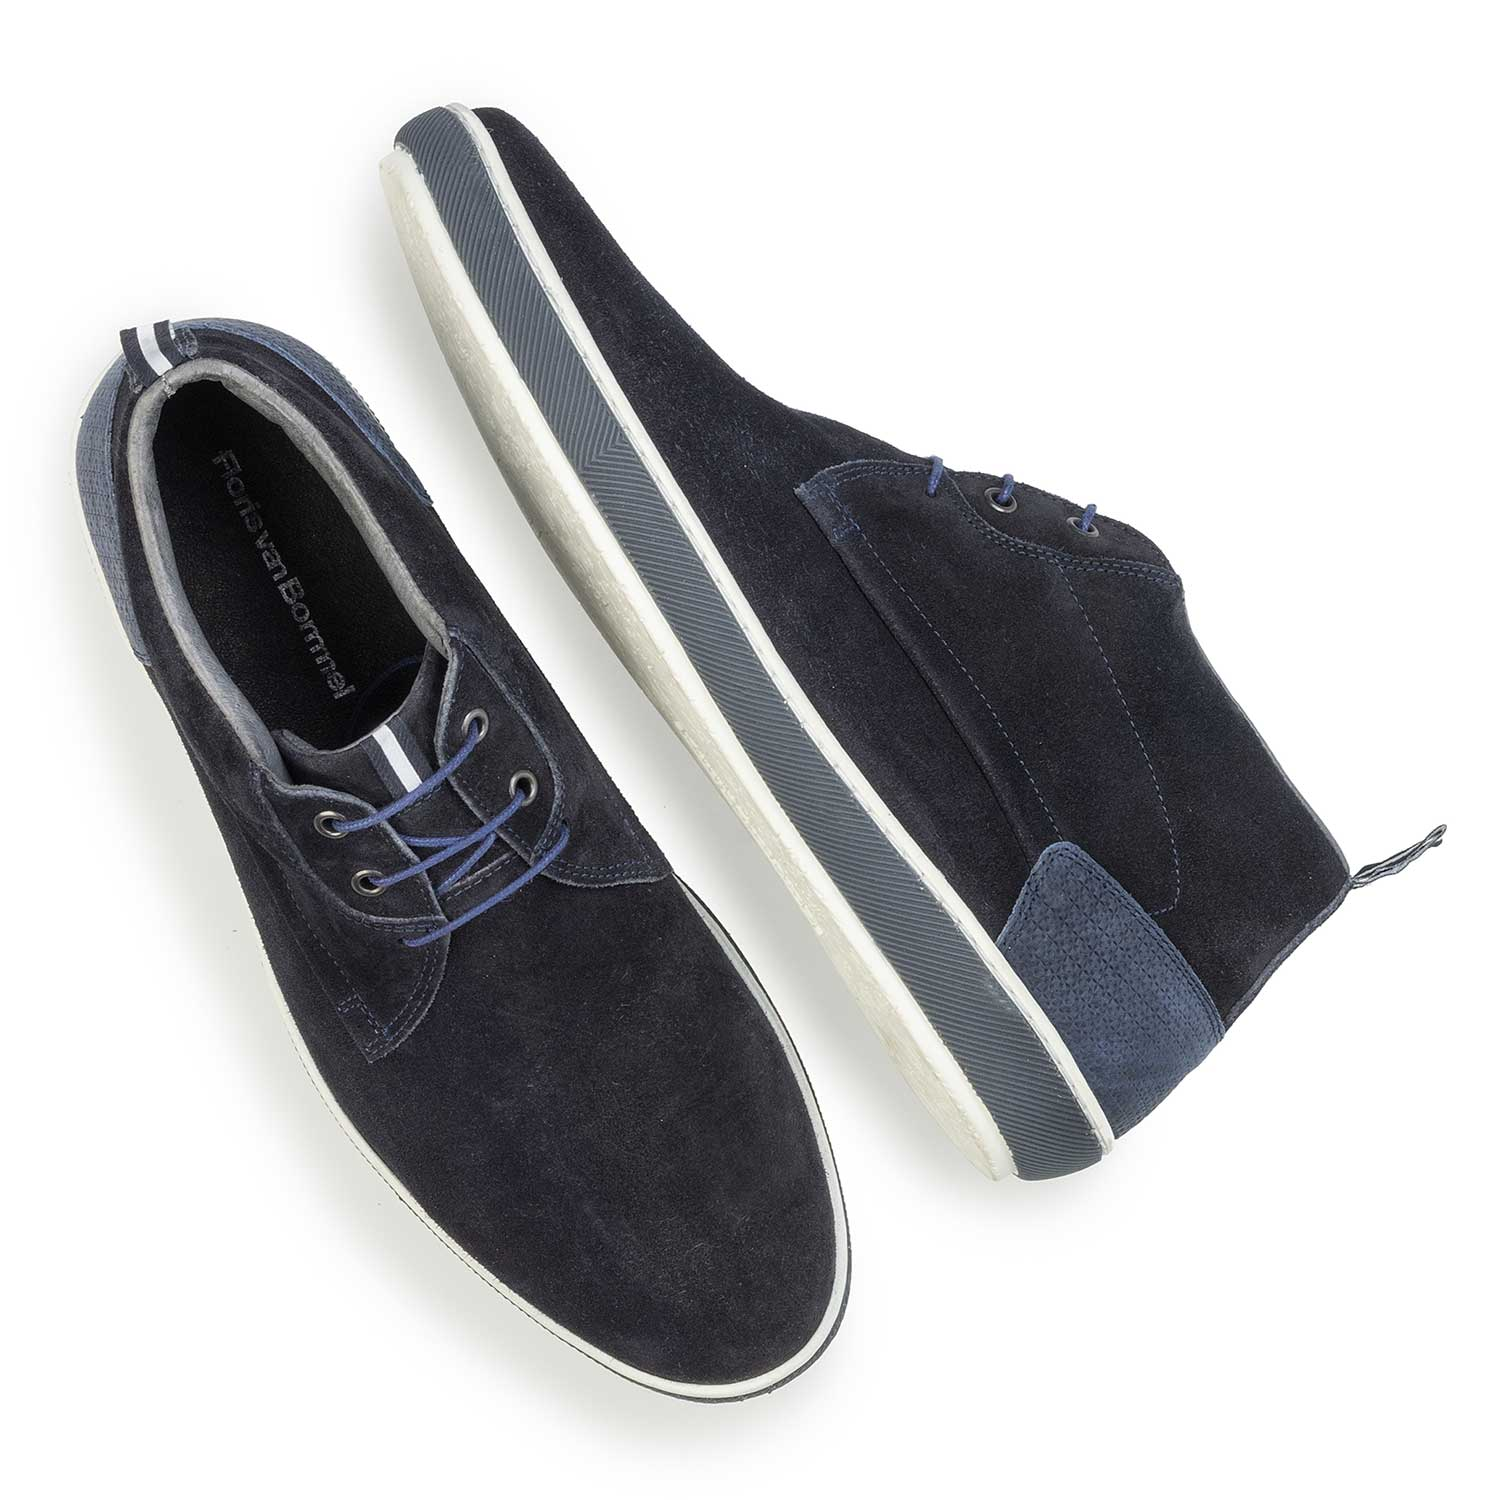 10989/05 - Dark blue suede leather lace shoe